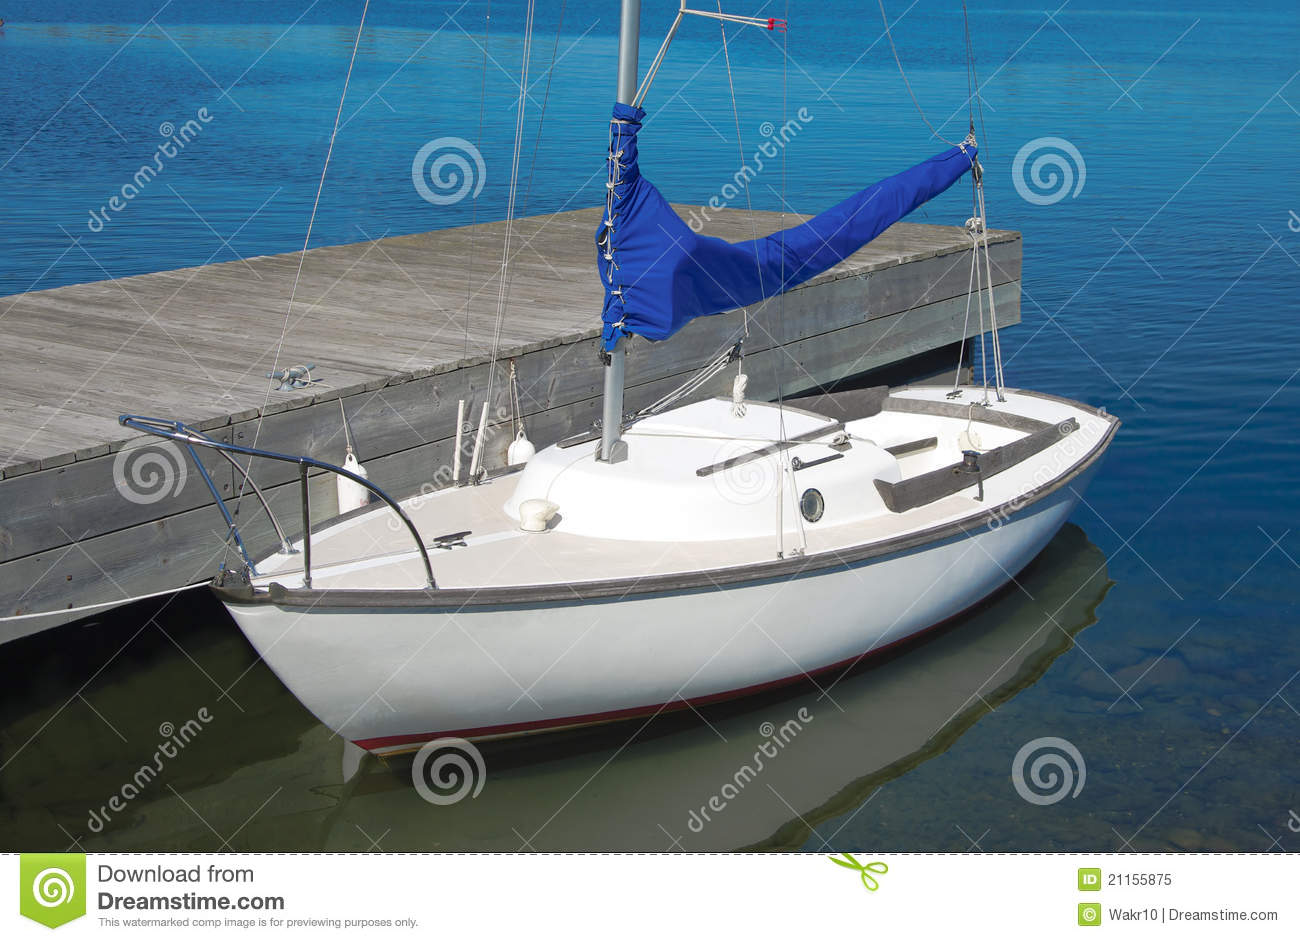 Small Sailboat Royalty Free Stock Photo - Image: 21155875